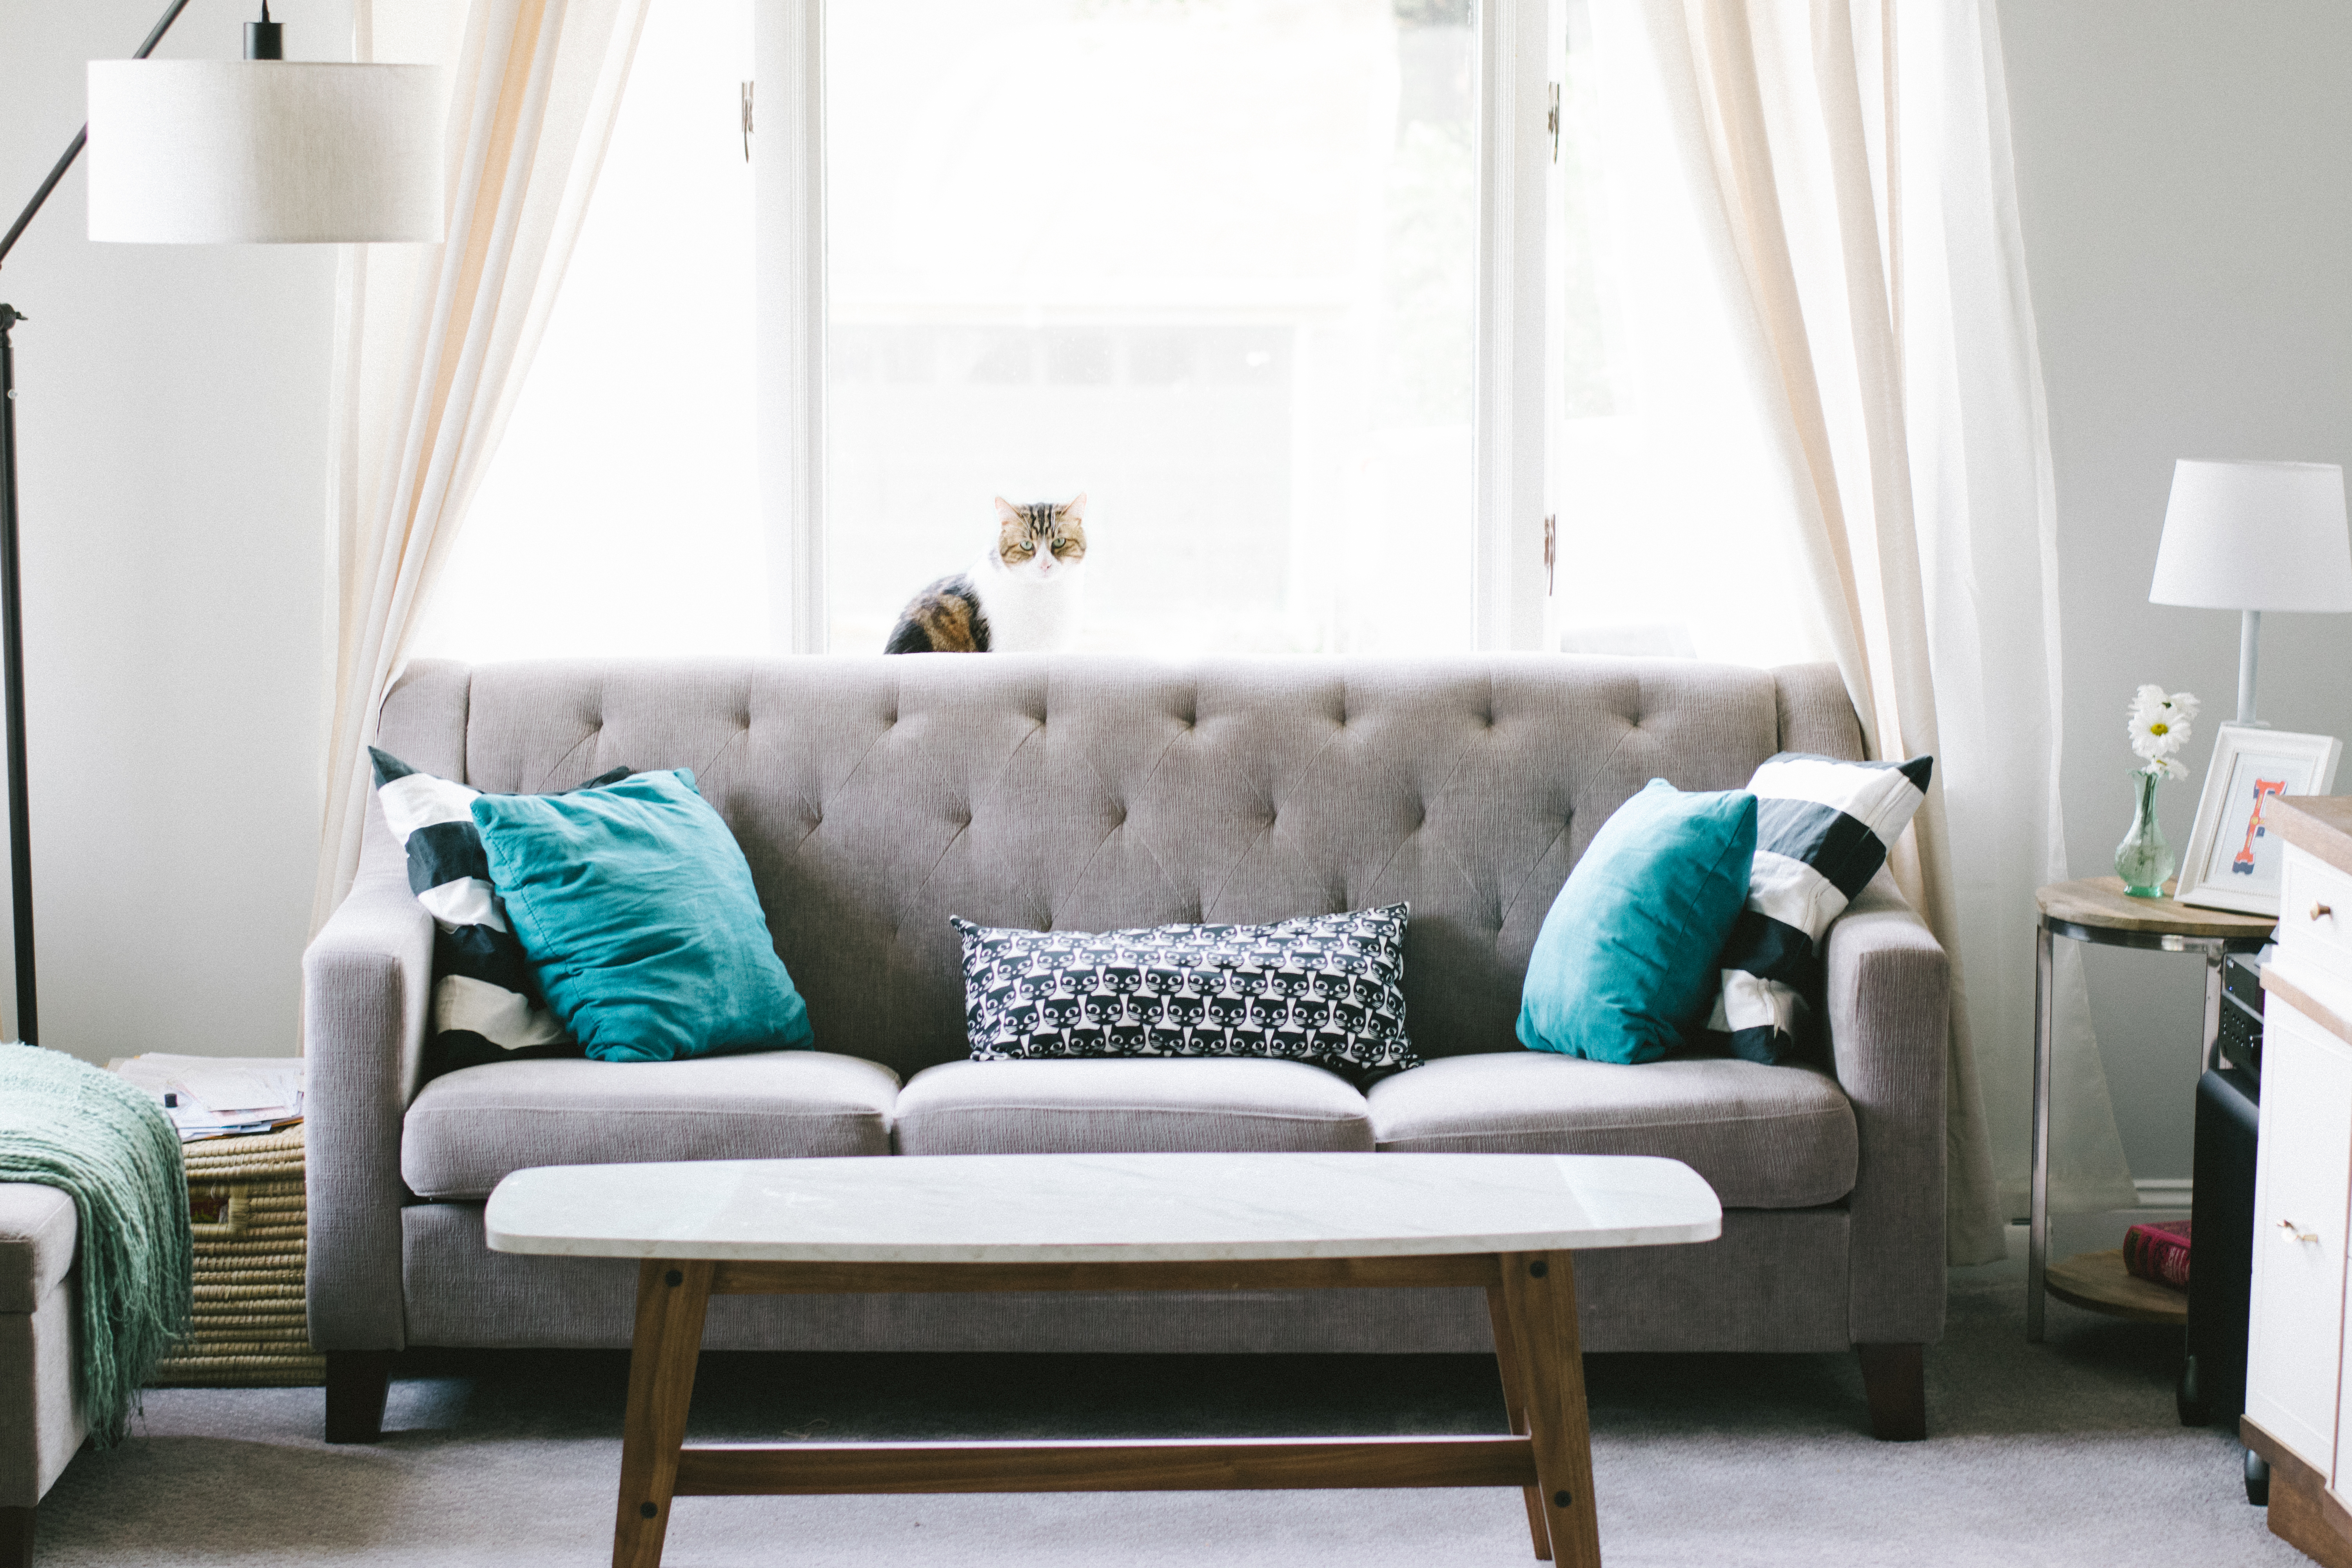 Home Decor Colors to Watch in 2018 - pastels, warm accents, jewel tones